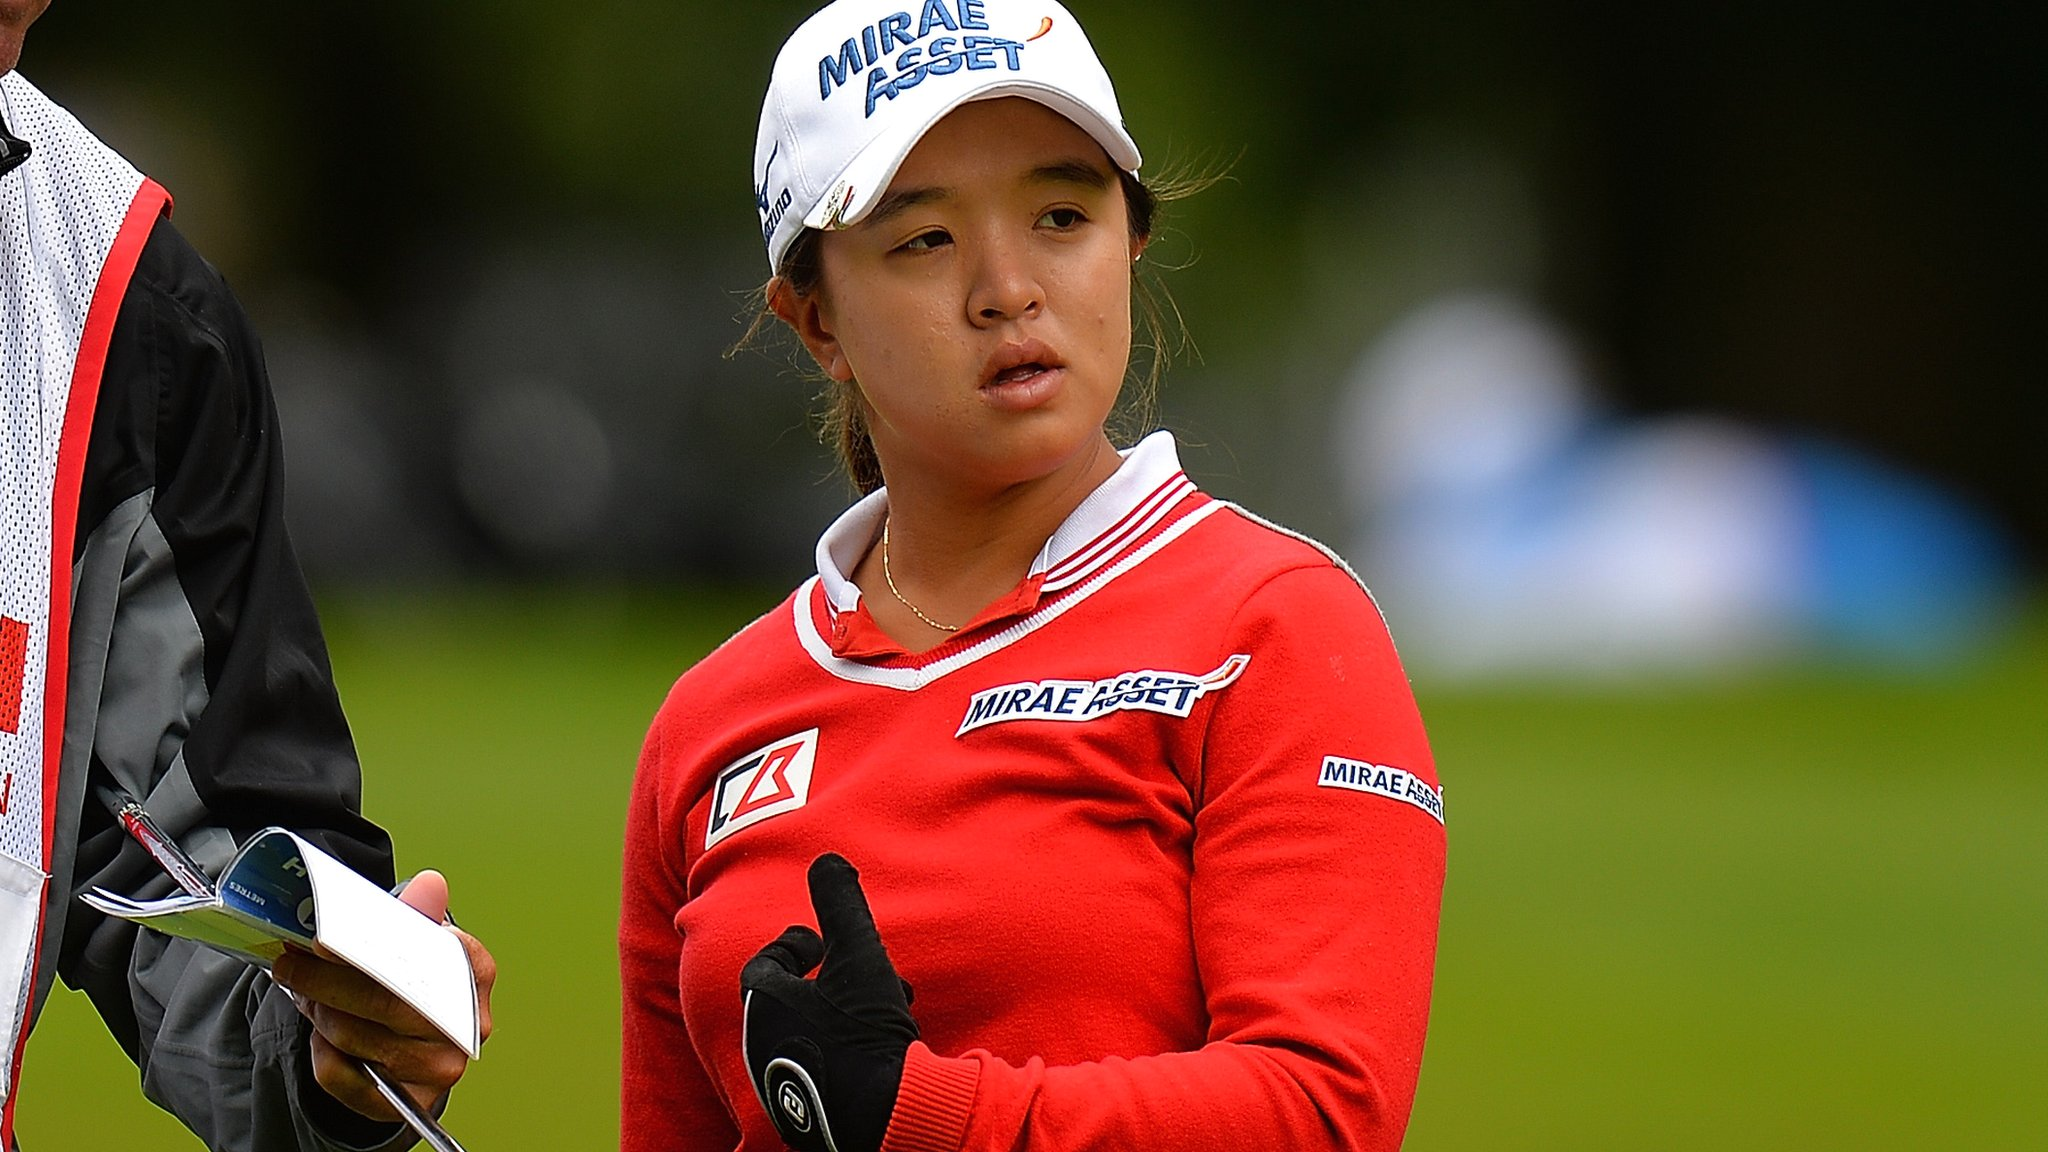 Watch: Kim holes with incredible approach at Women's British Open